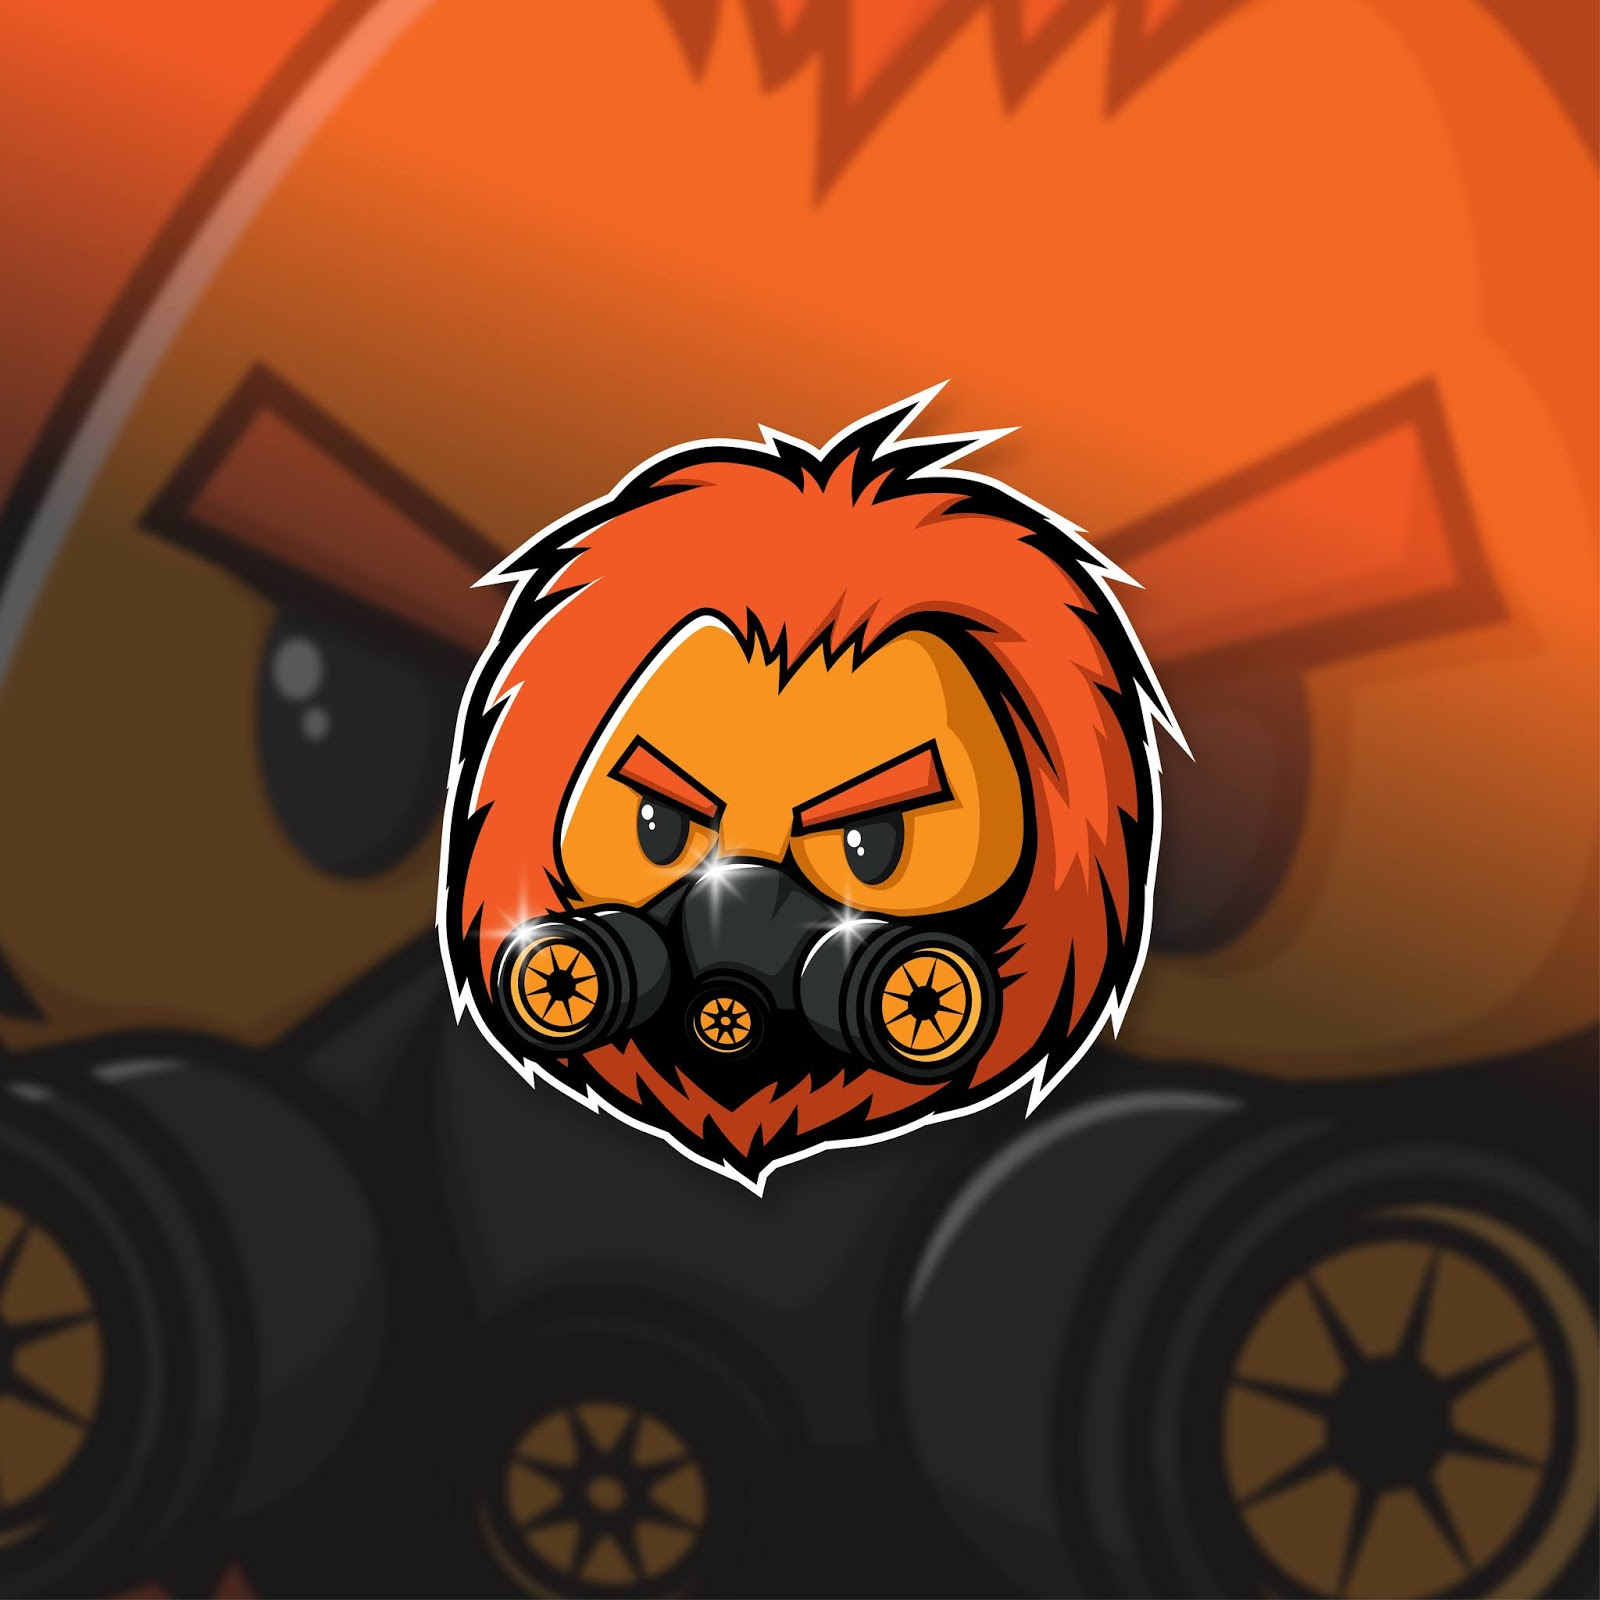 Esports Mascot Logo Team Lion Squad Free Download Vector CDR, AI, EPS and PNG Formats